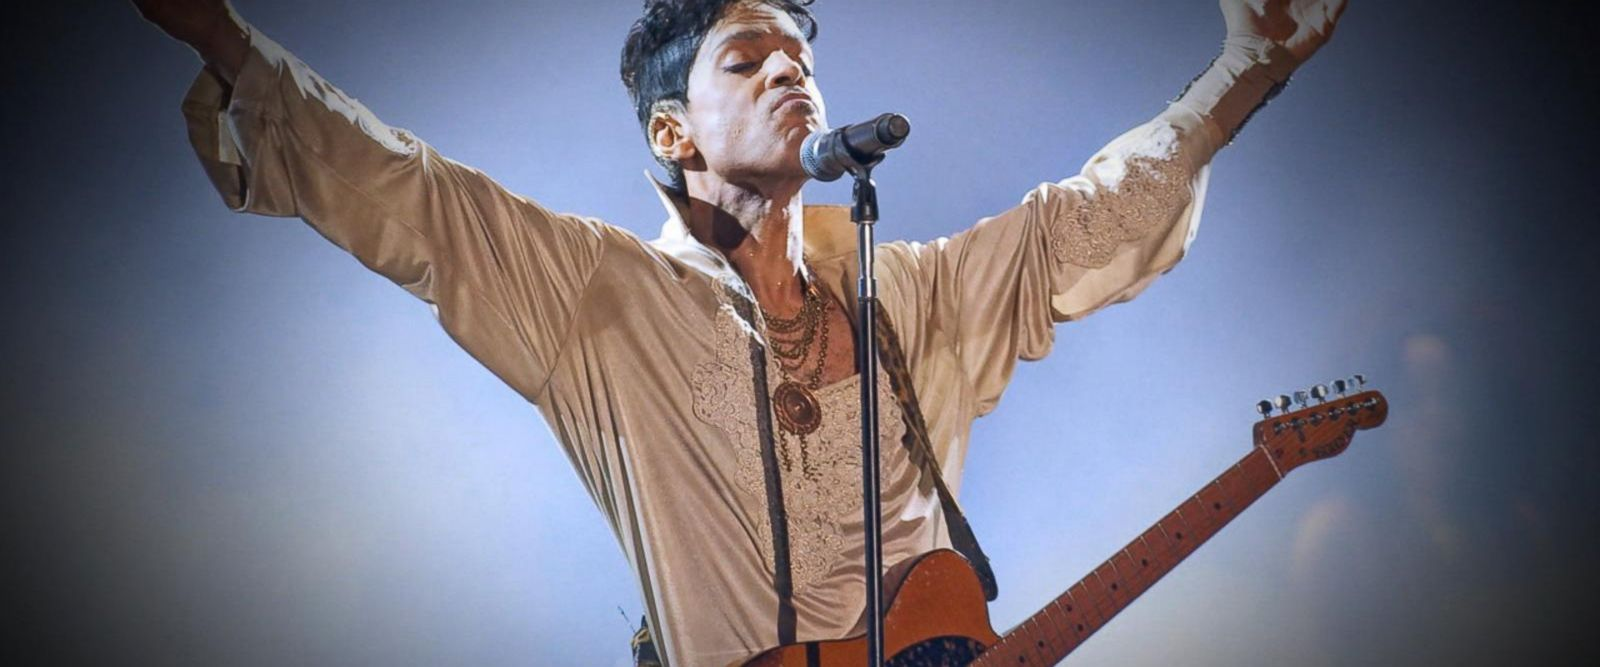 VIDEO: Prince may have unknowingly taken counterfeit medication laced with Fentanyl: Authorities